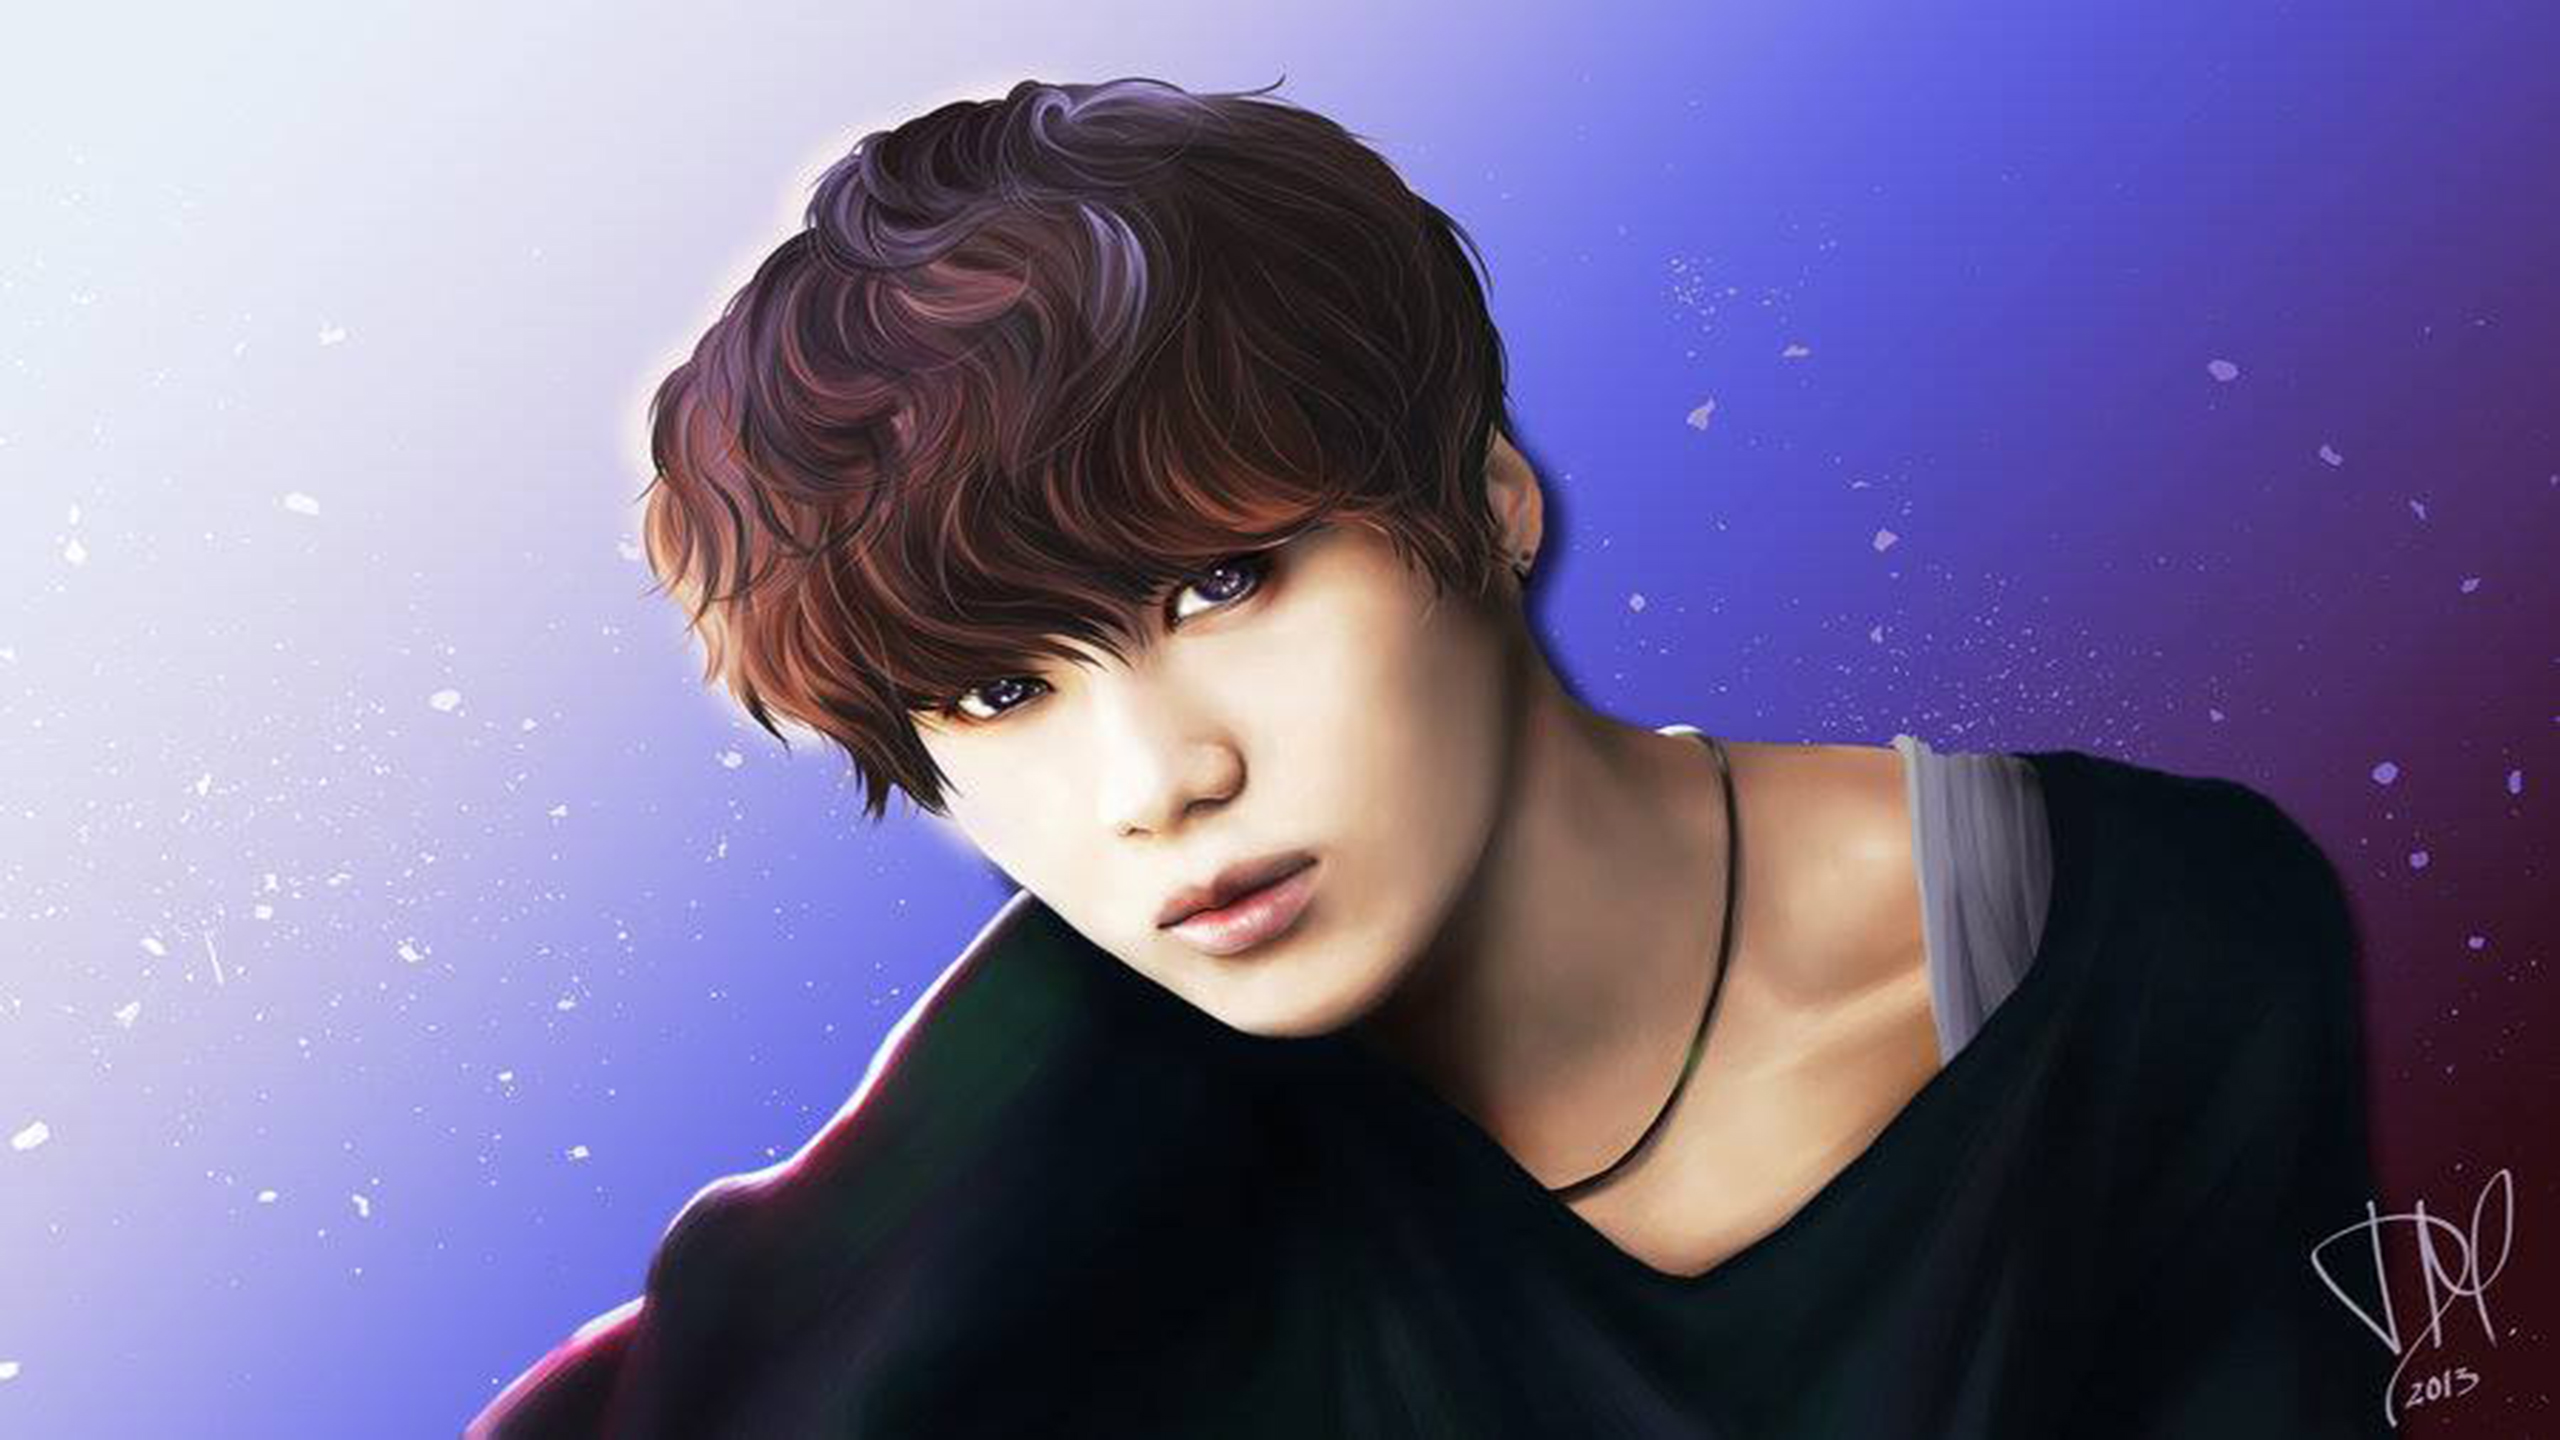 Taemin Wallpaper   Lee Taemin Wallpaper 34851357 2560x1440